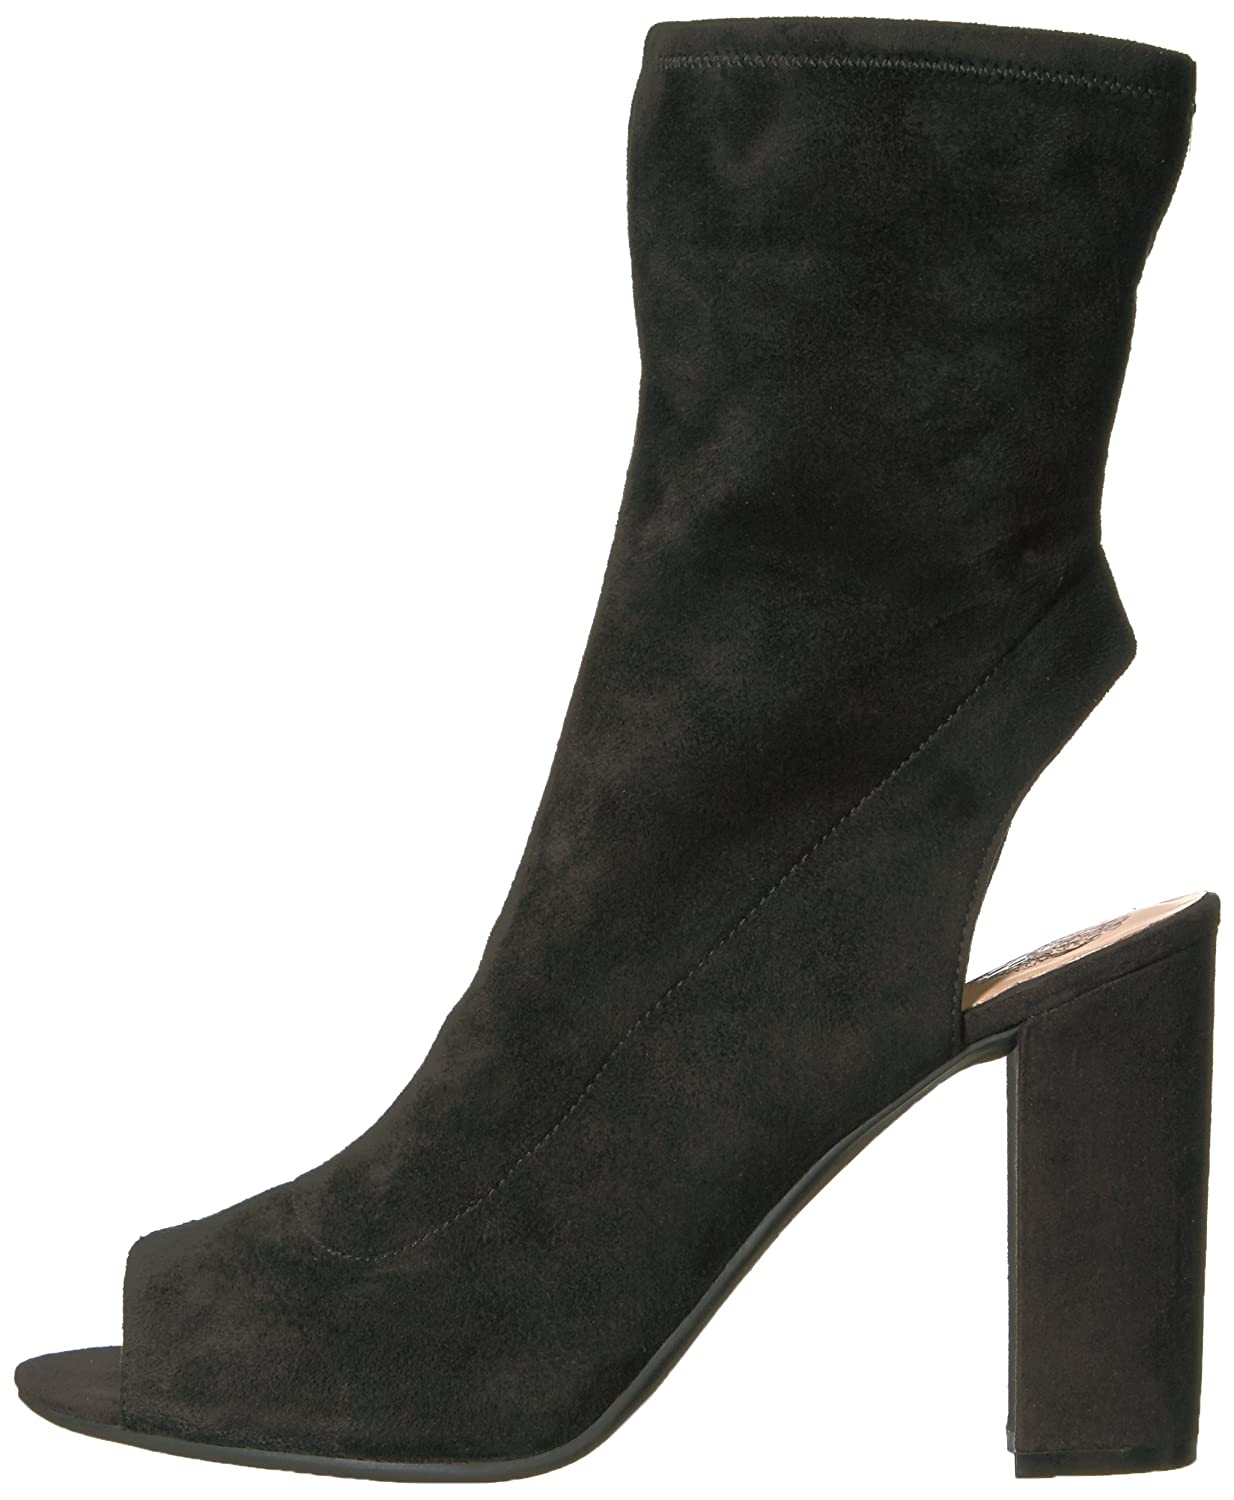 Vince Camuto Women's Sarinta Ankle Boot B01MY7QO3N 8 B(M) US|Black